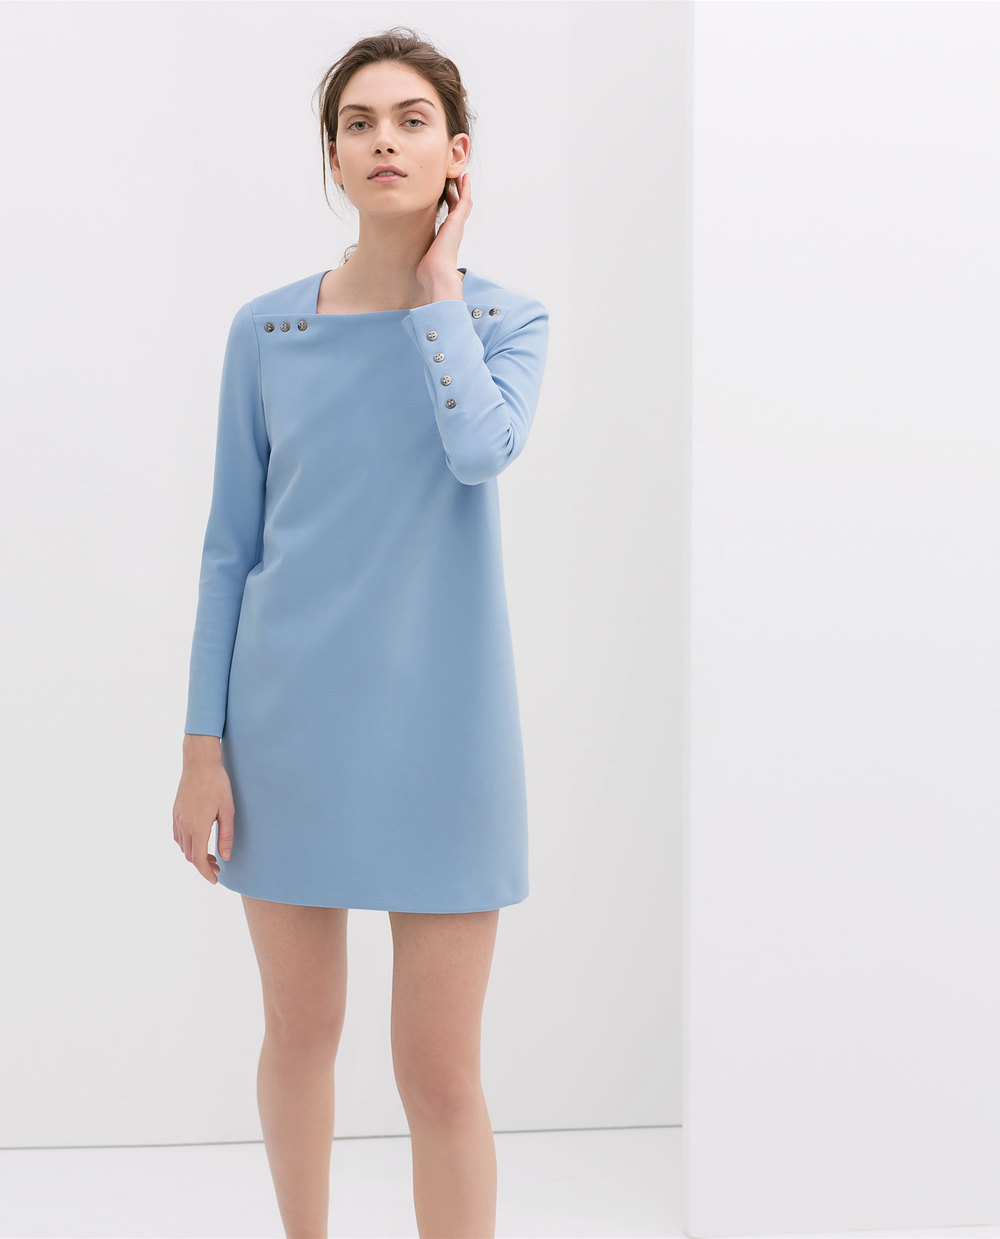 Long sleeve dress with buttons. Zara. $99.90.